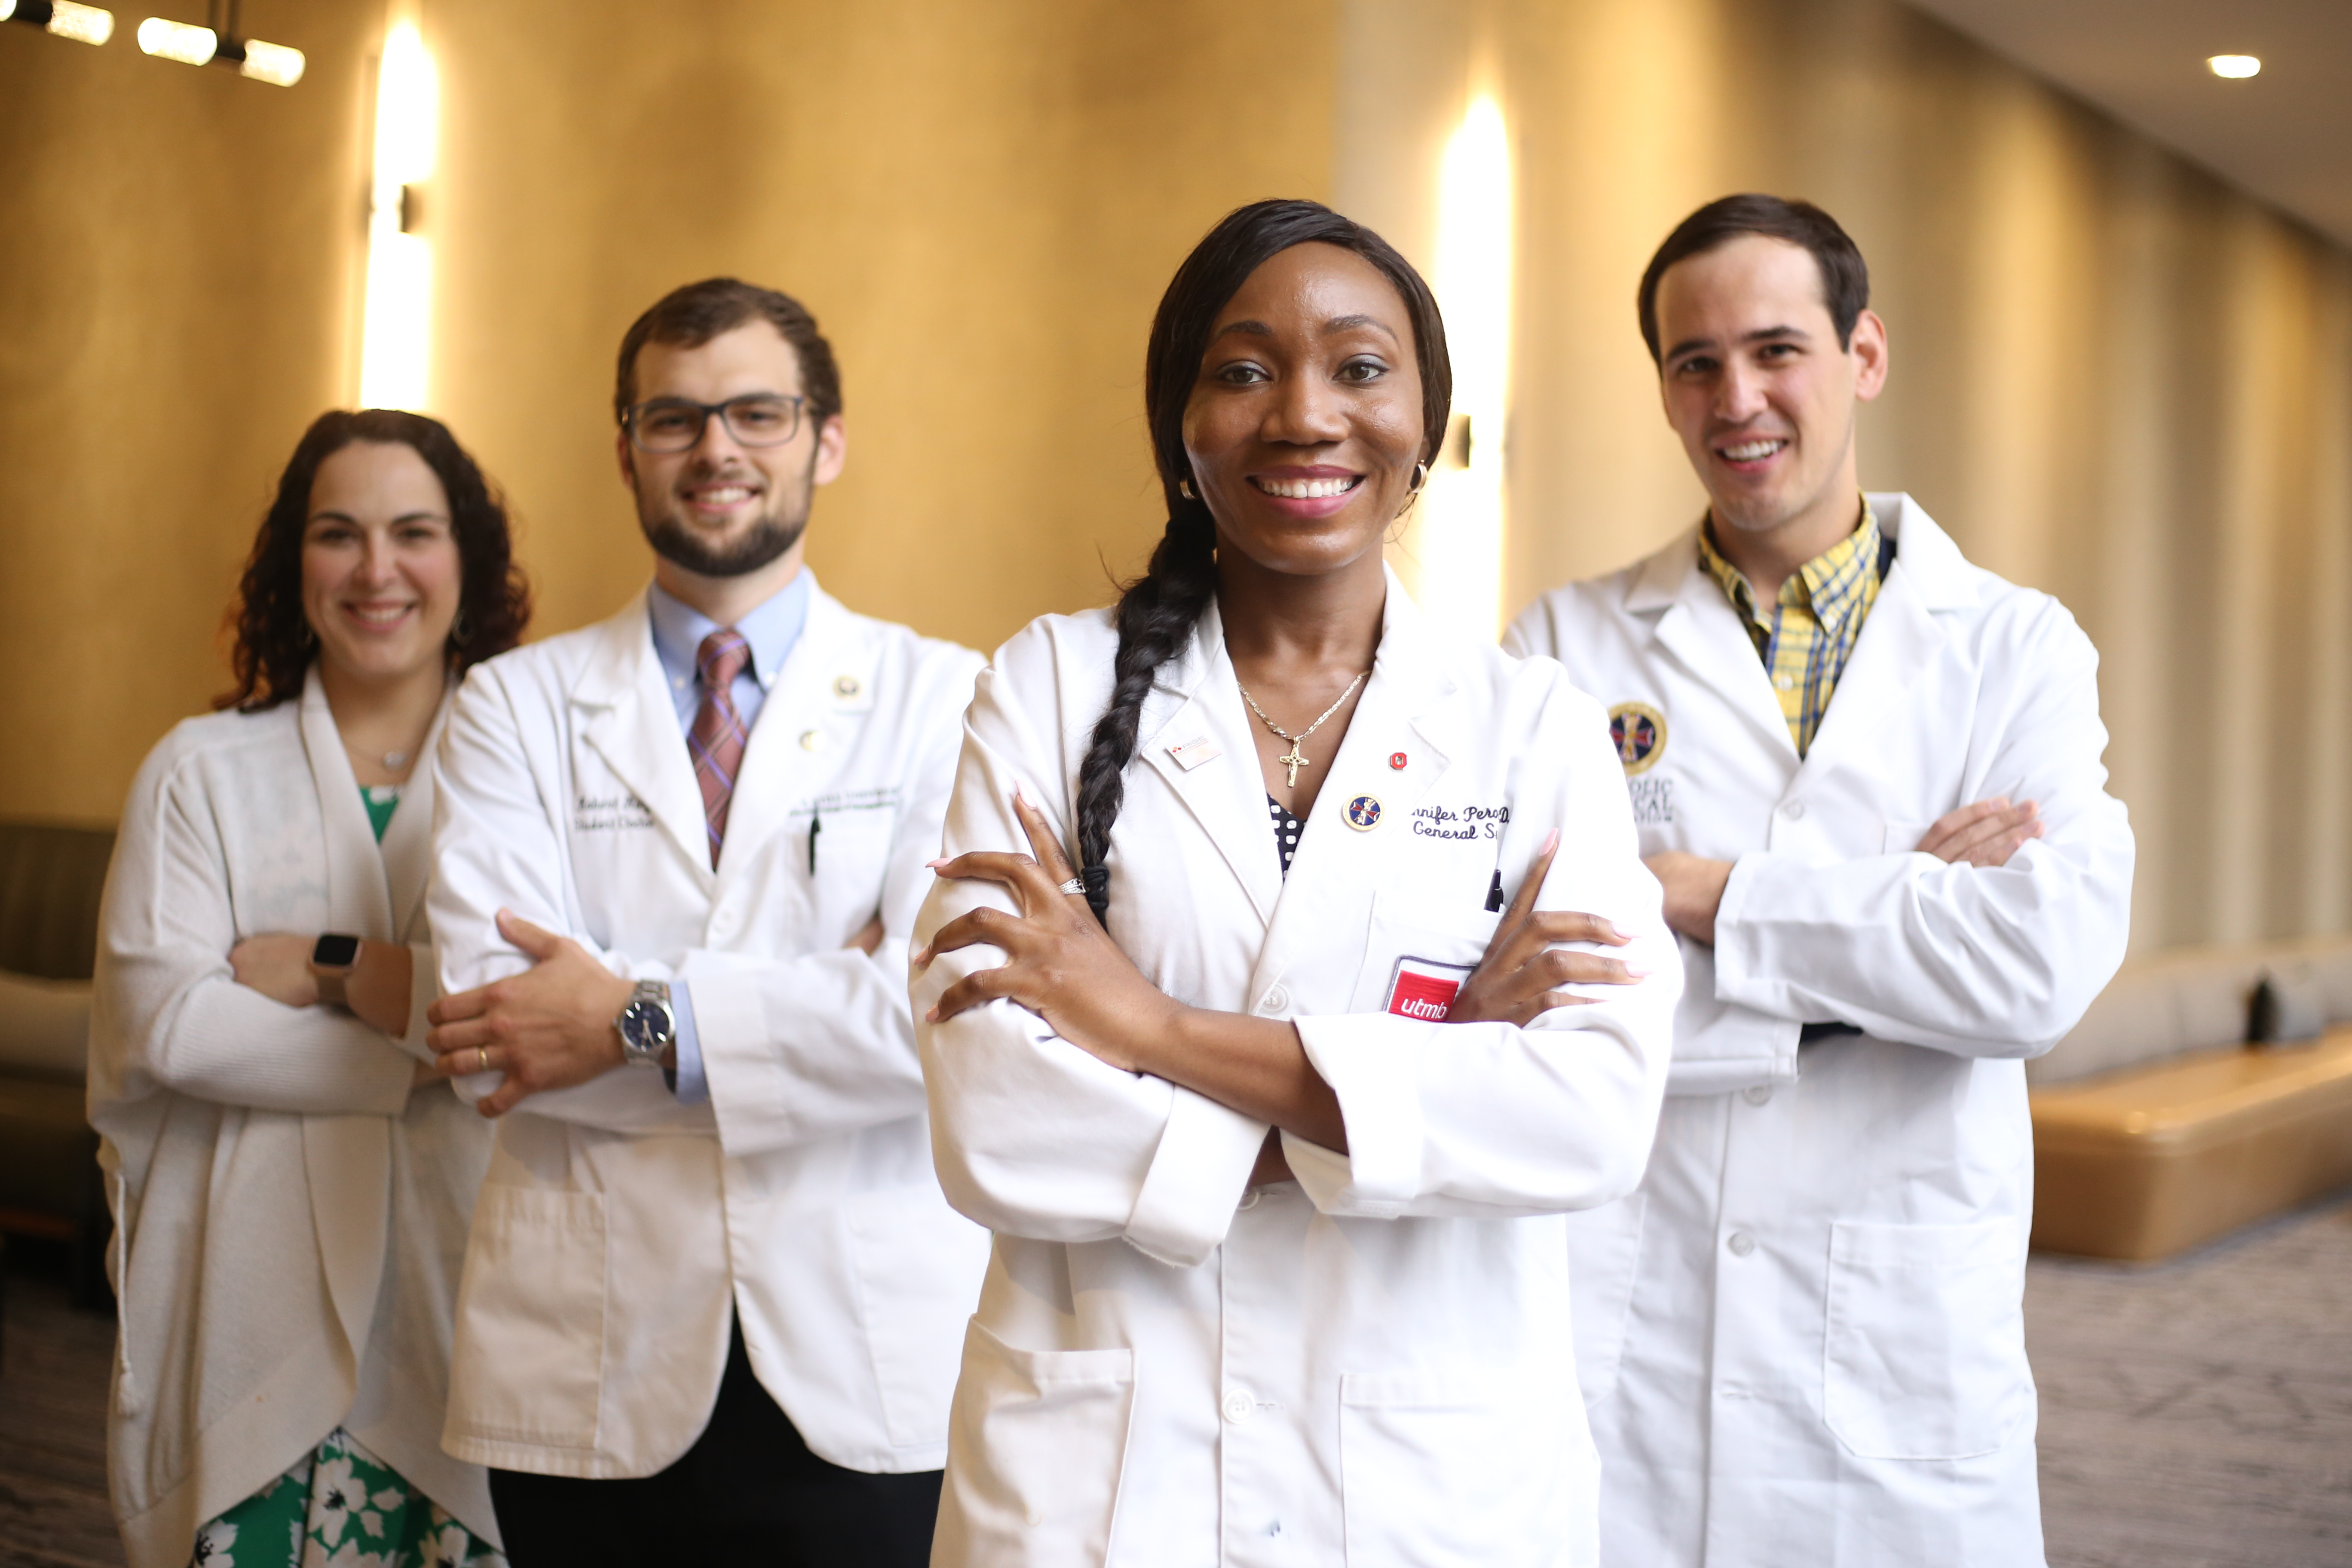 Medical residents, including Temilola Yvonne Abdul (center), pose during the 2018 Catholic Medical Association conference, held in Dallas. / Courtesy Catholic Medical Association/Catholic Sentinel